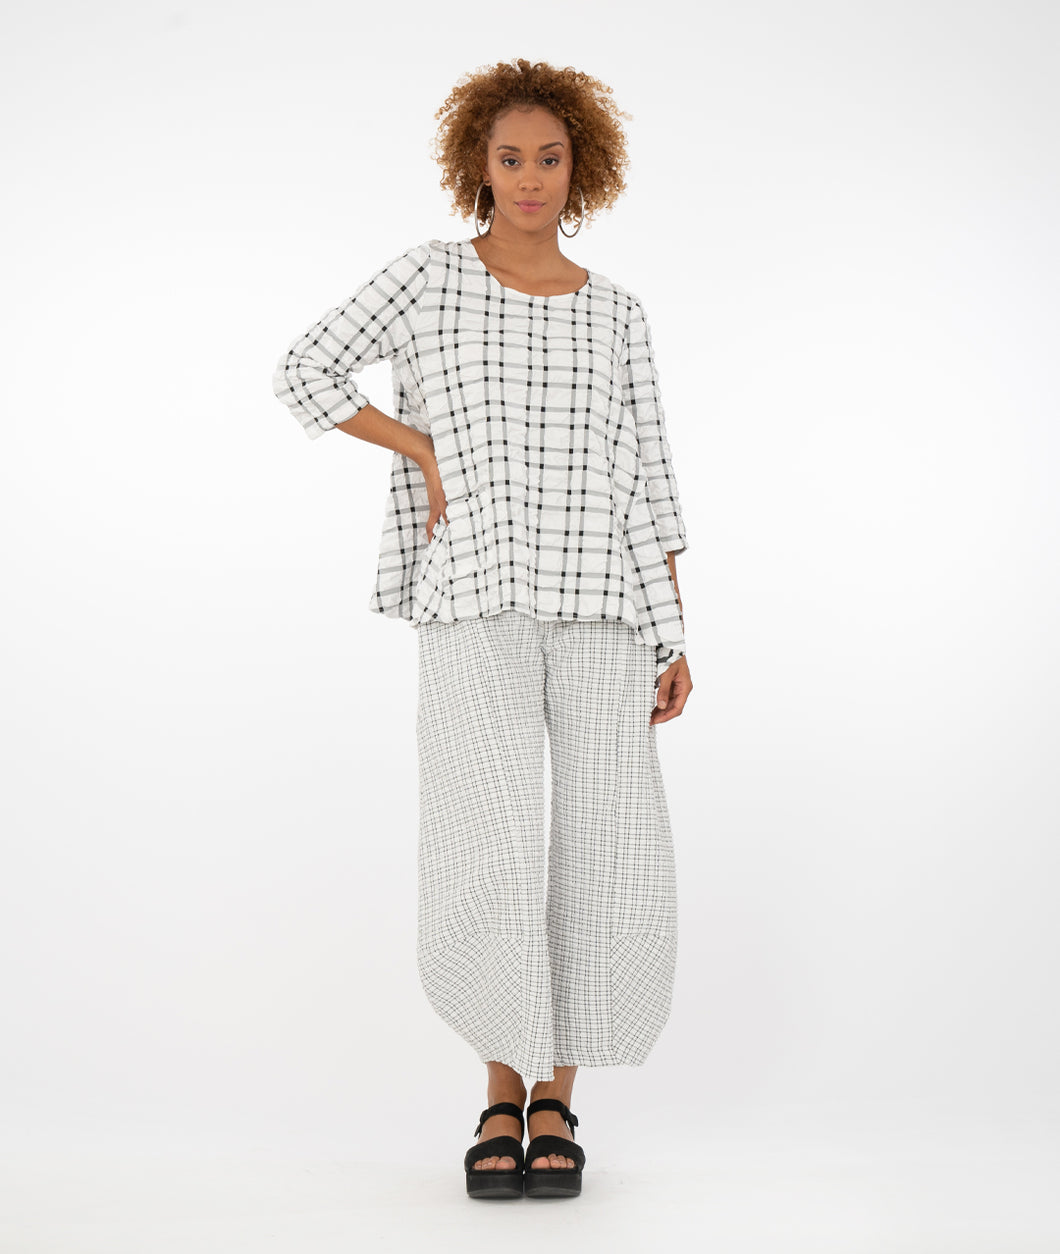 model in a black/white grid patterened top with pants in the same, but small print, in front of a white background